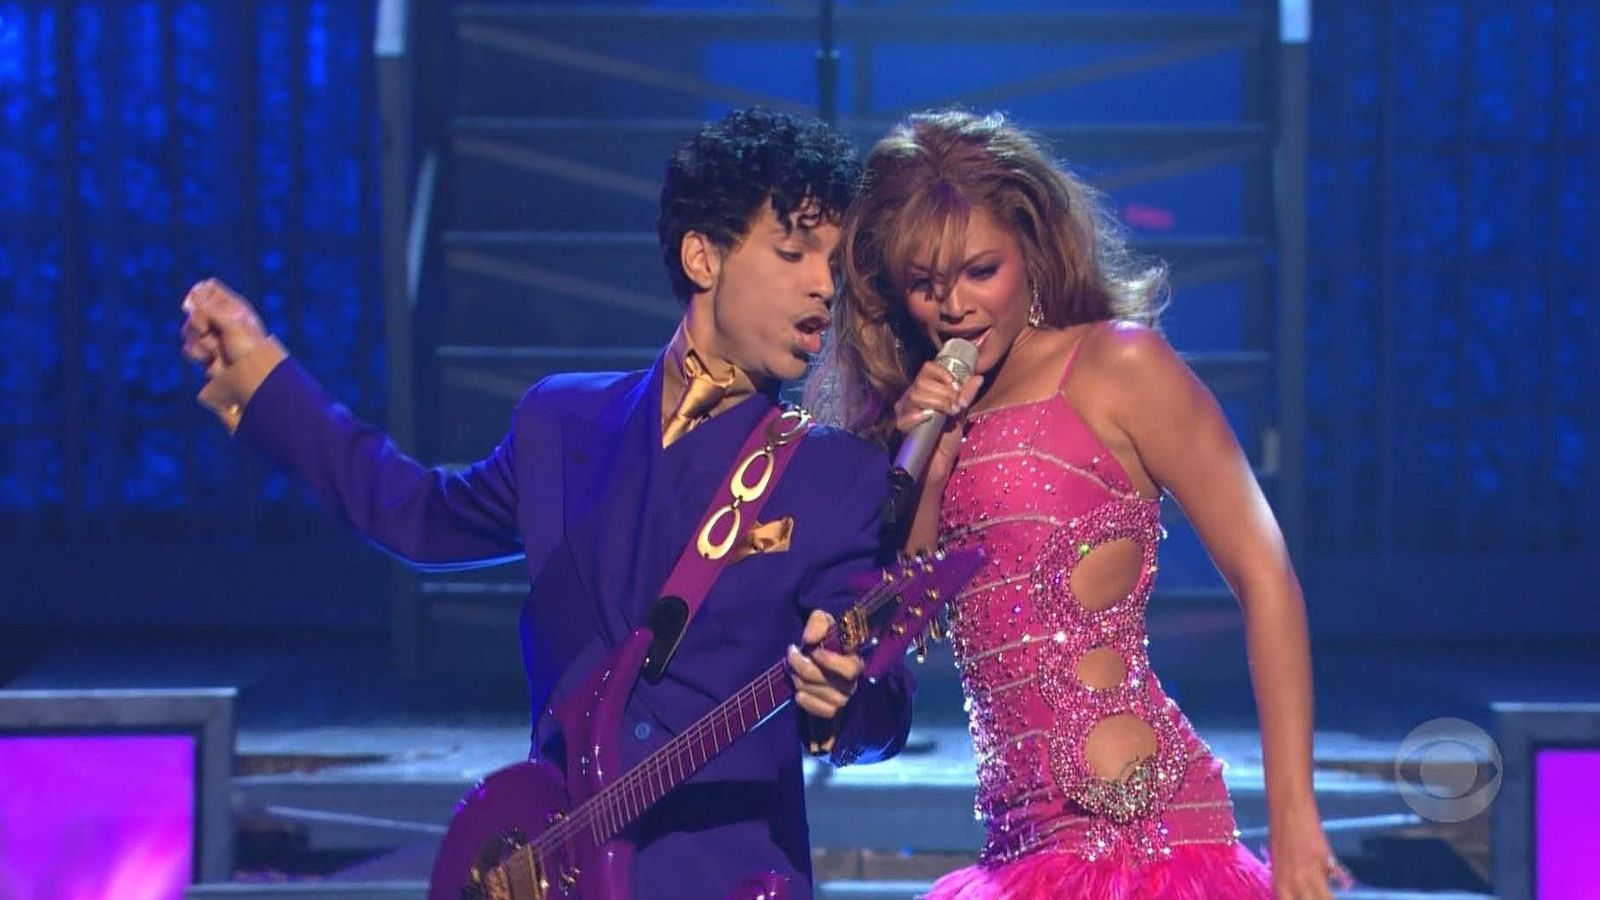 Remember when prince and beyonc rocked the world together - Prince wallpaper ...